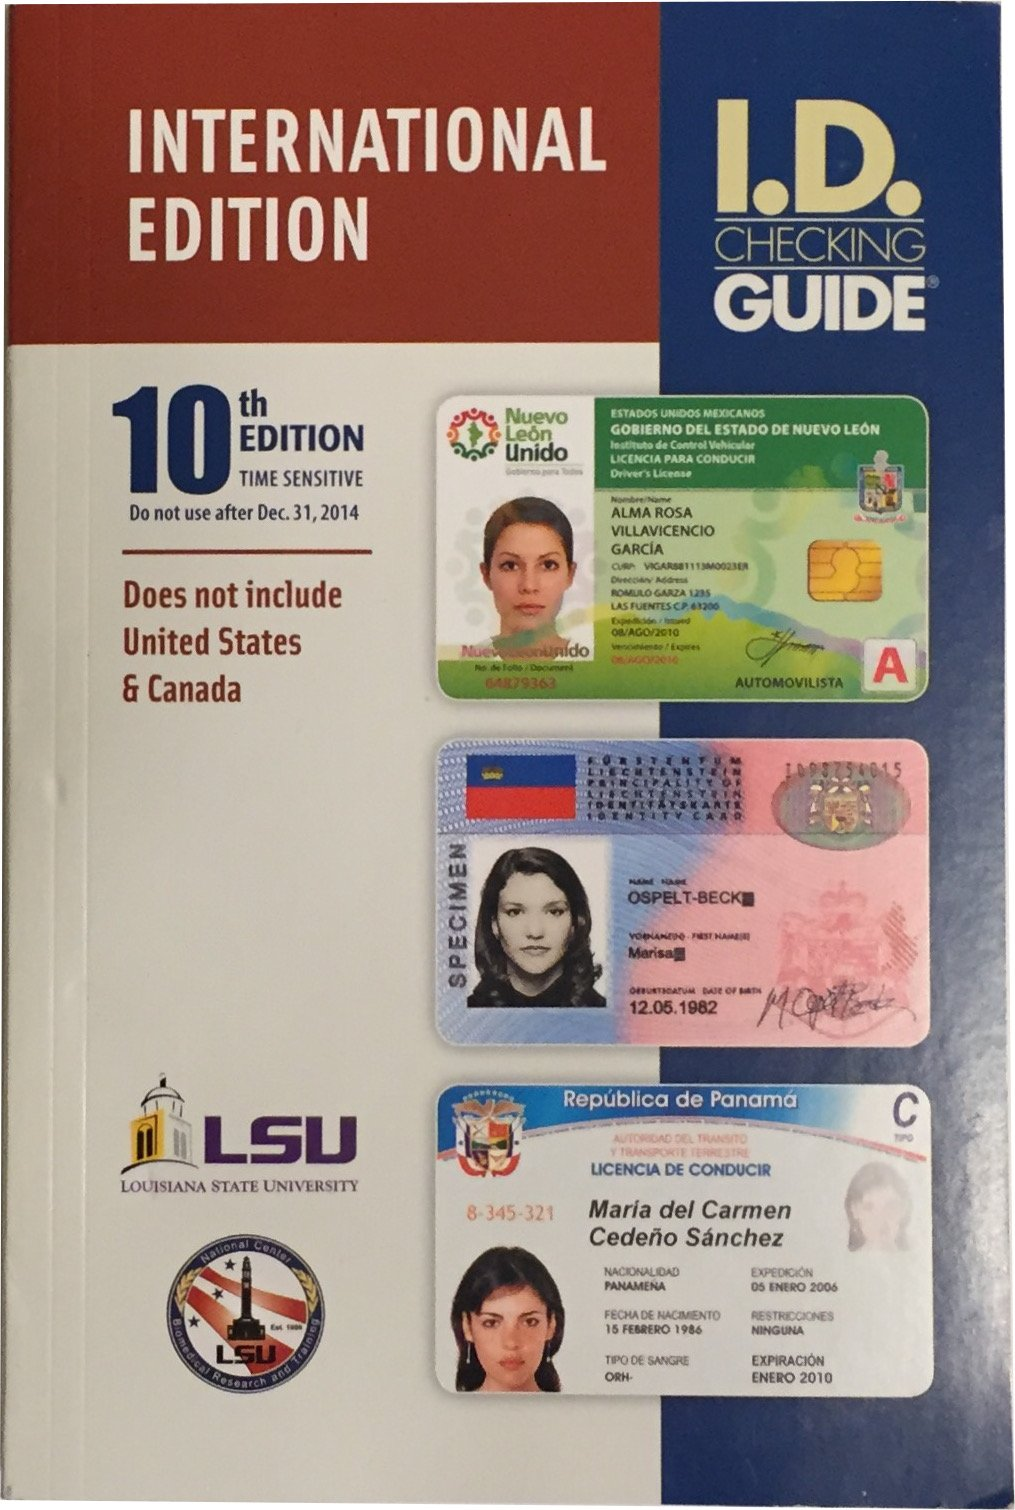 ID Checking Guide International Edition 10th Edition